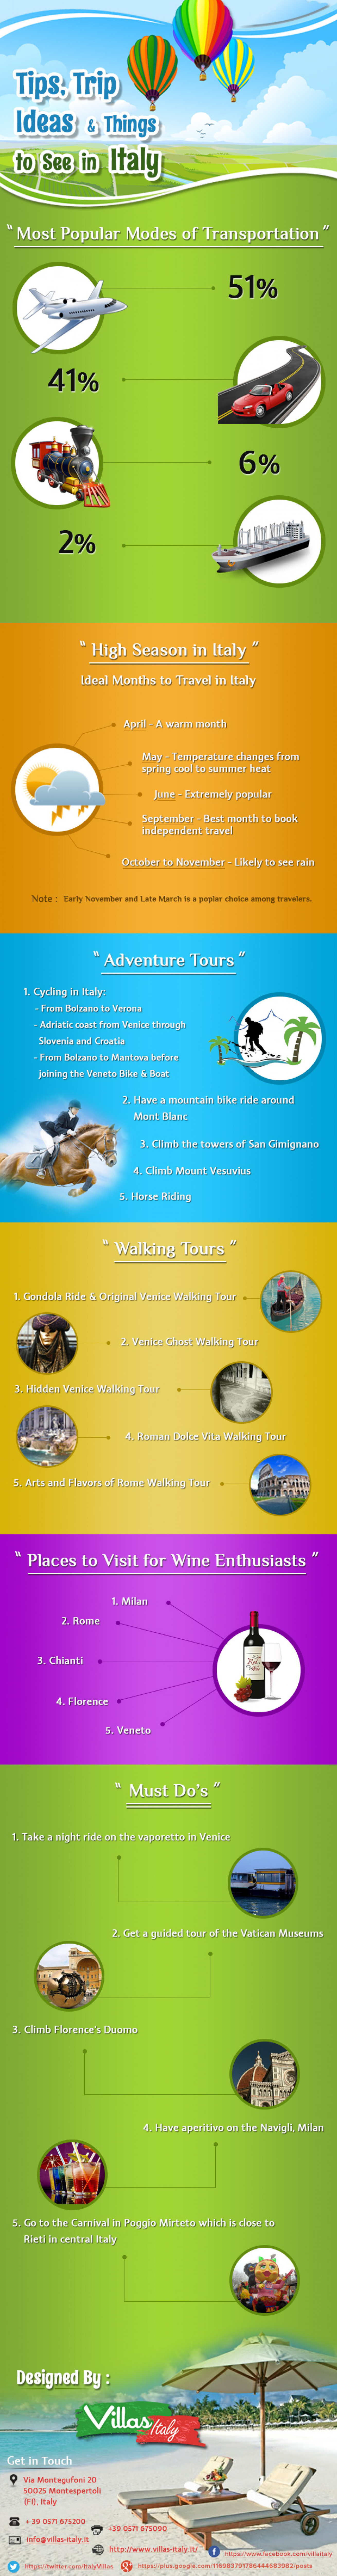 Tips, Trip Ideas & Things to See in Italy Infographic